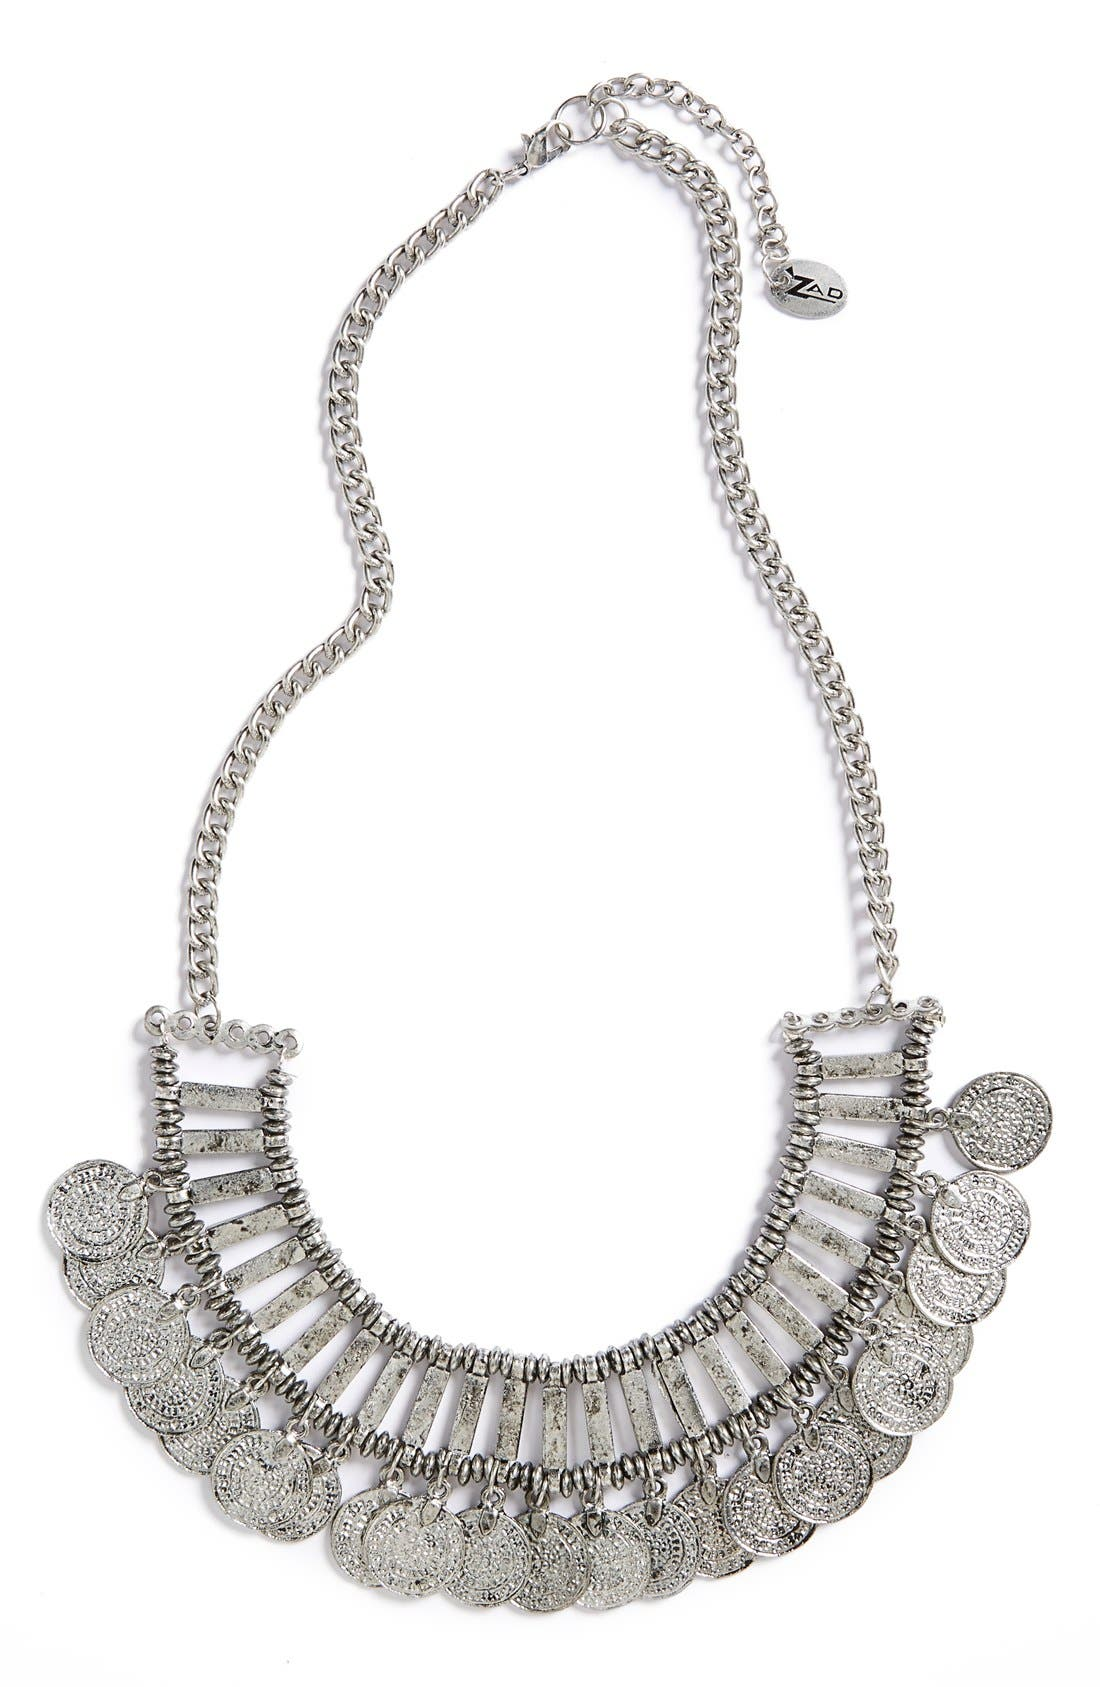 Alternate Image 1 Selected - Zad Coin Bib Necklace